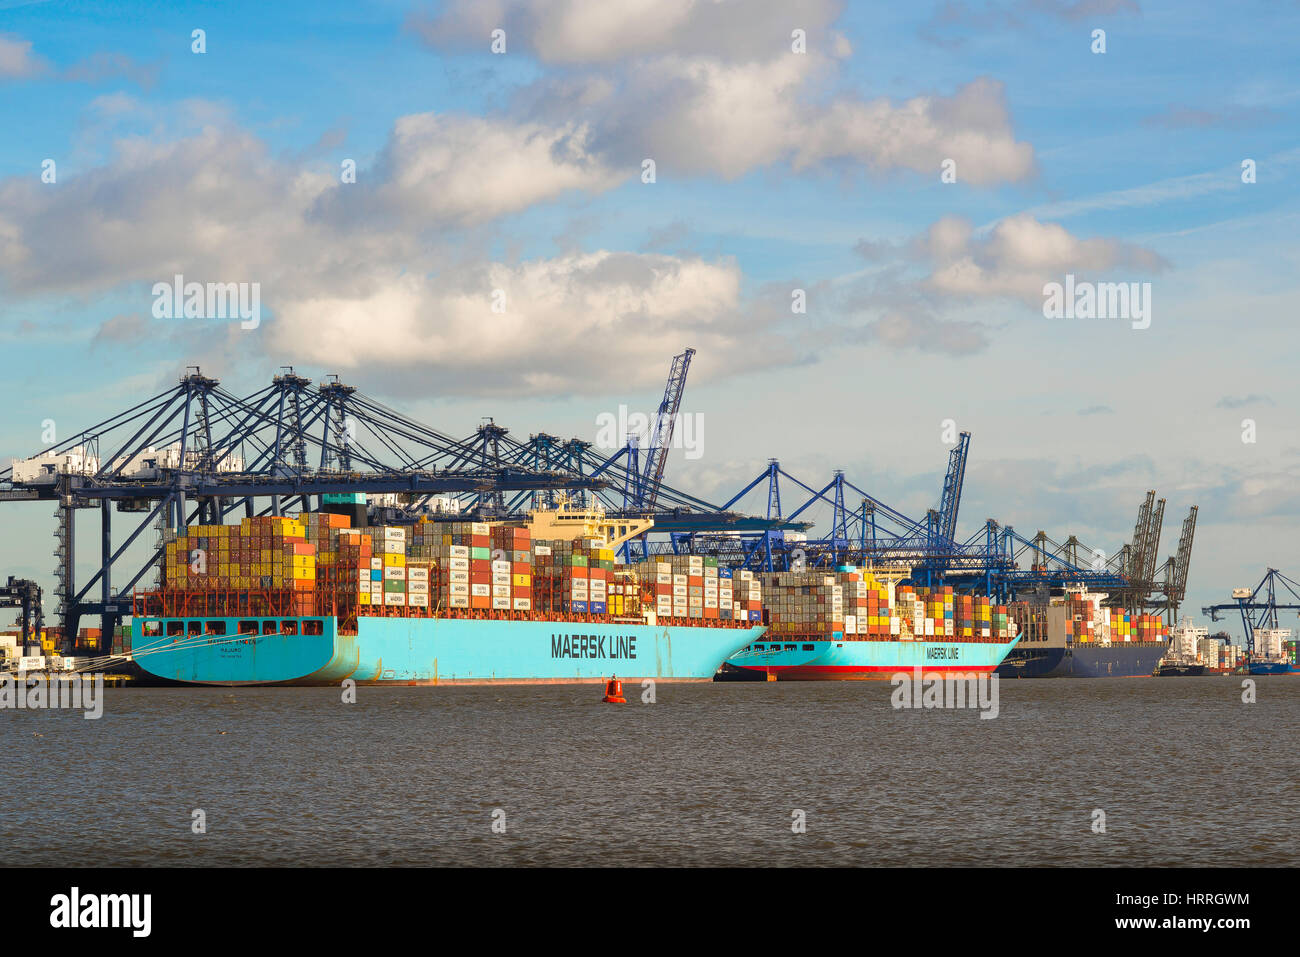 Container ships being unloaded at the largest container port in the UK, Felixstowe docks, England. Stock Photo